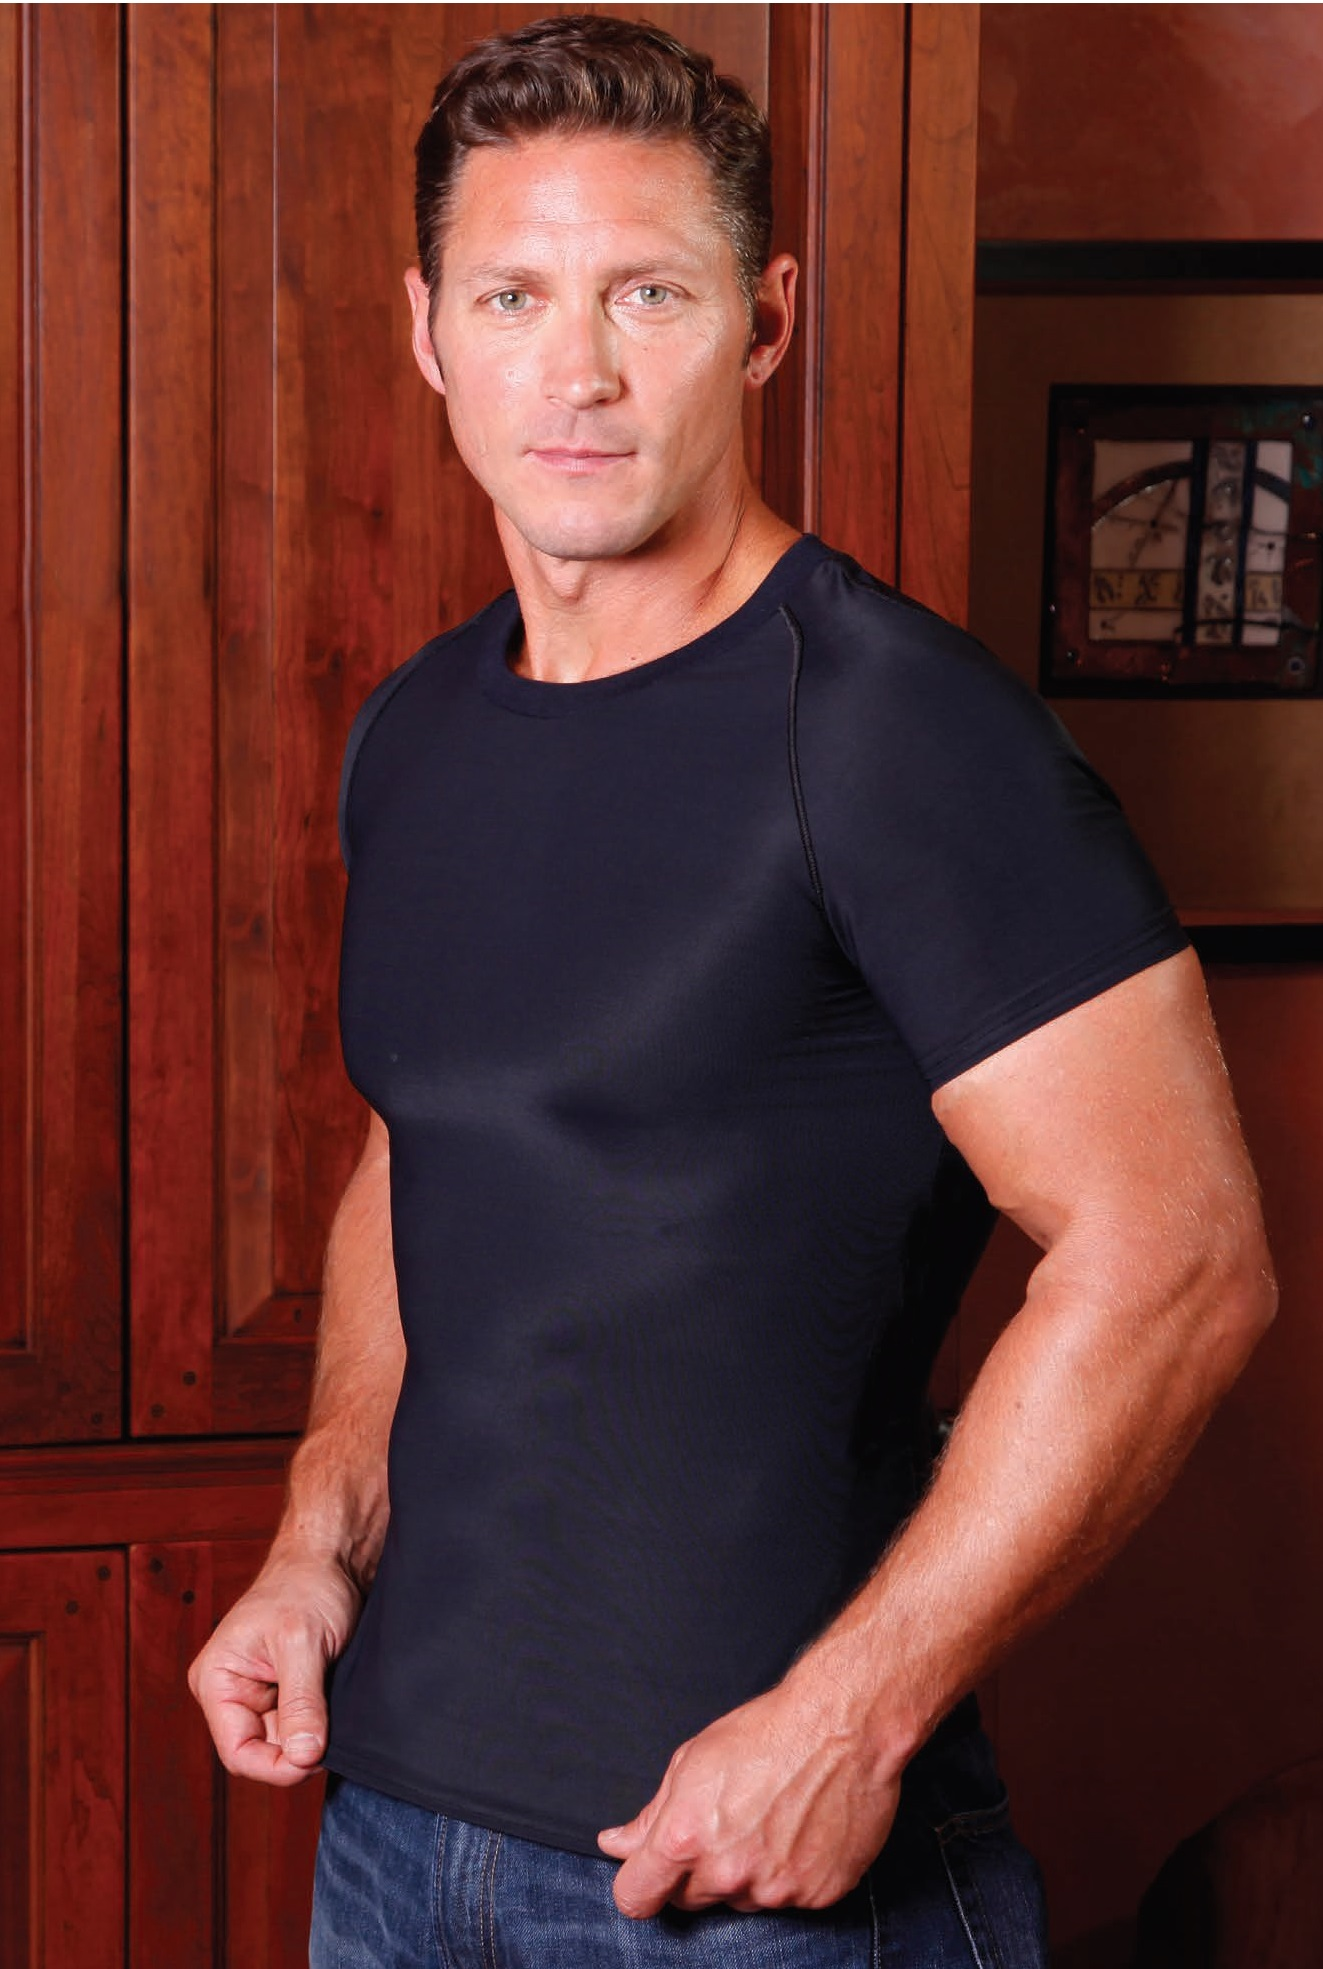 SC-175 CDI Stage 2 Male Compression Shirt